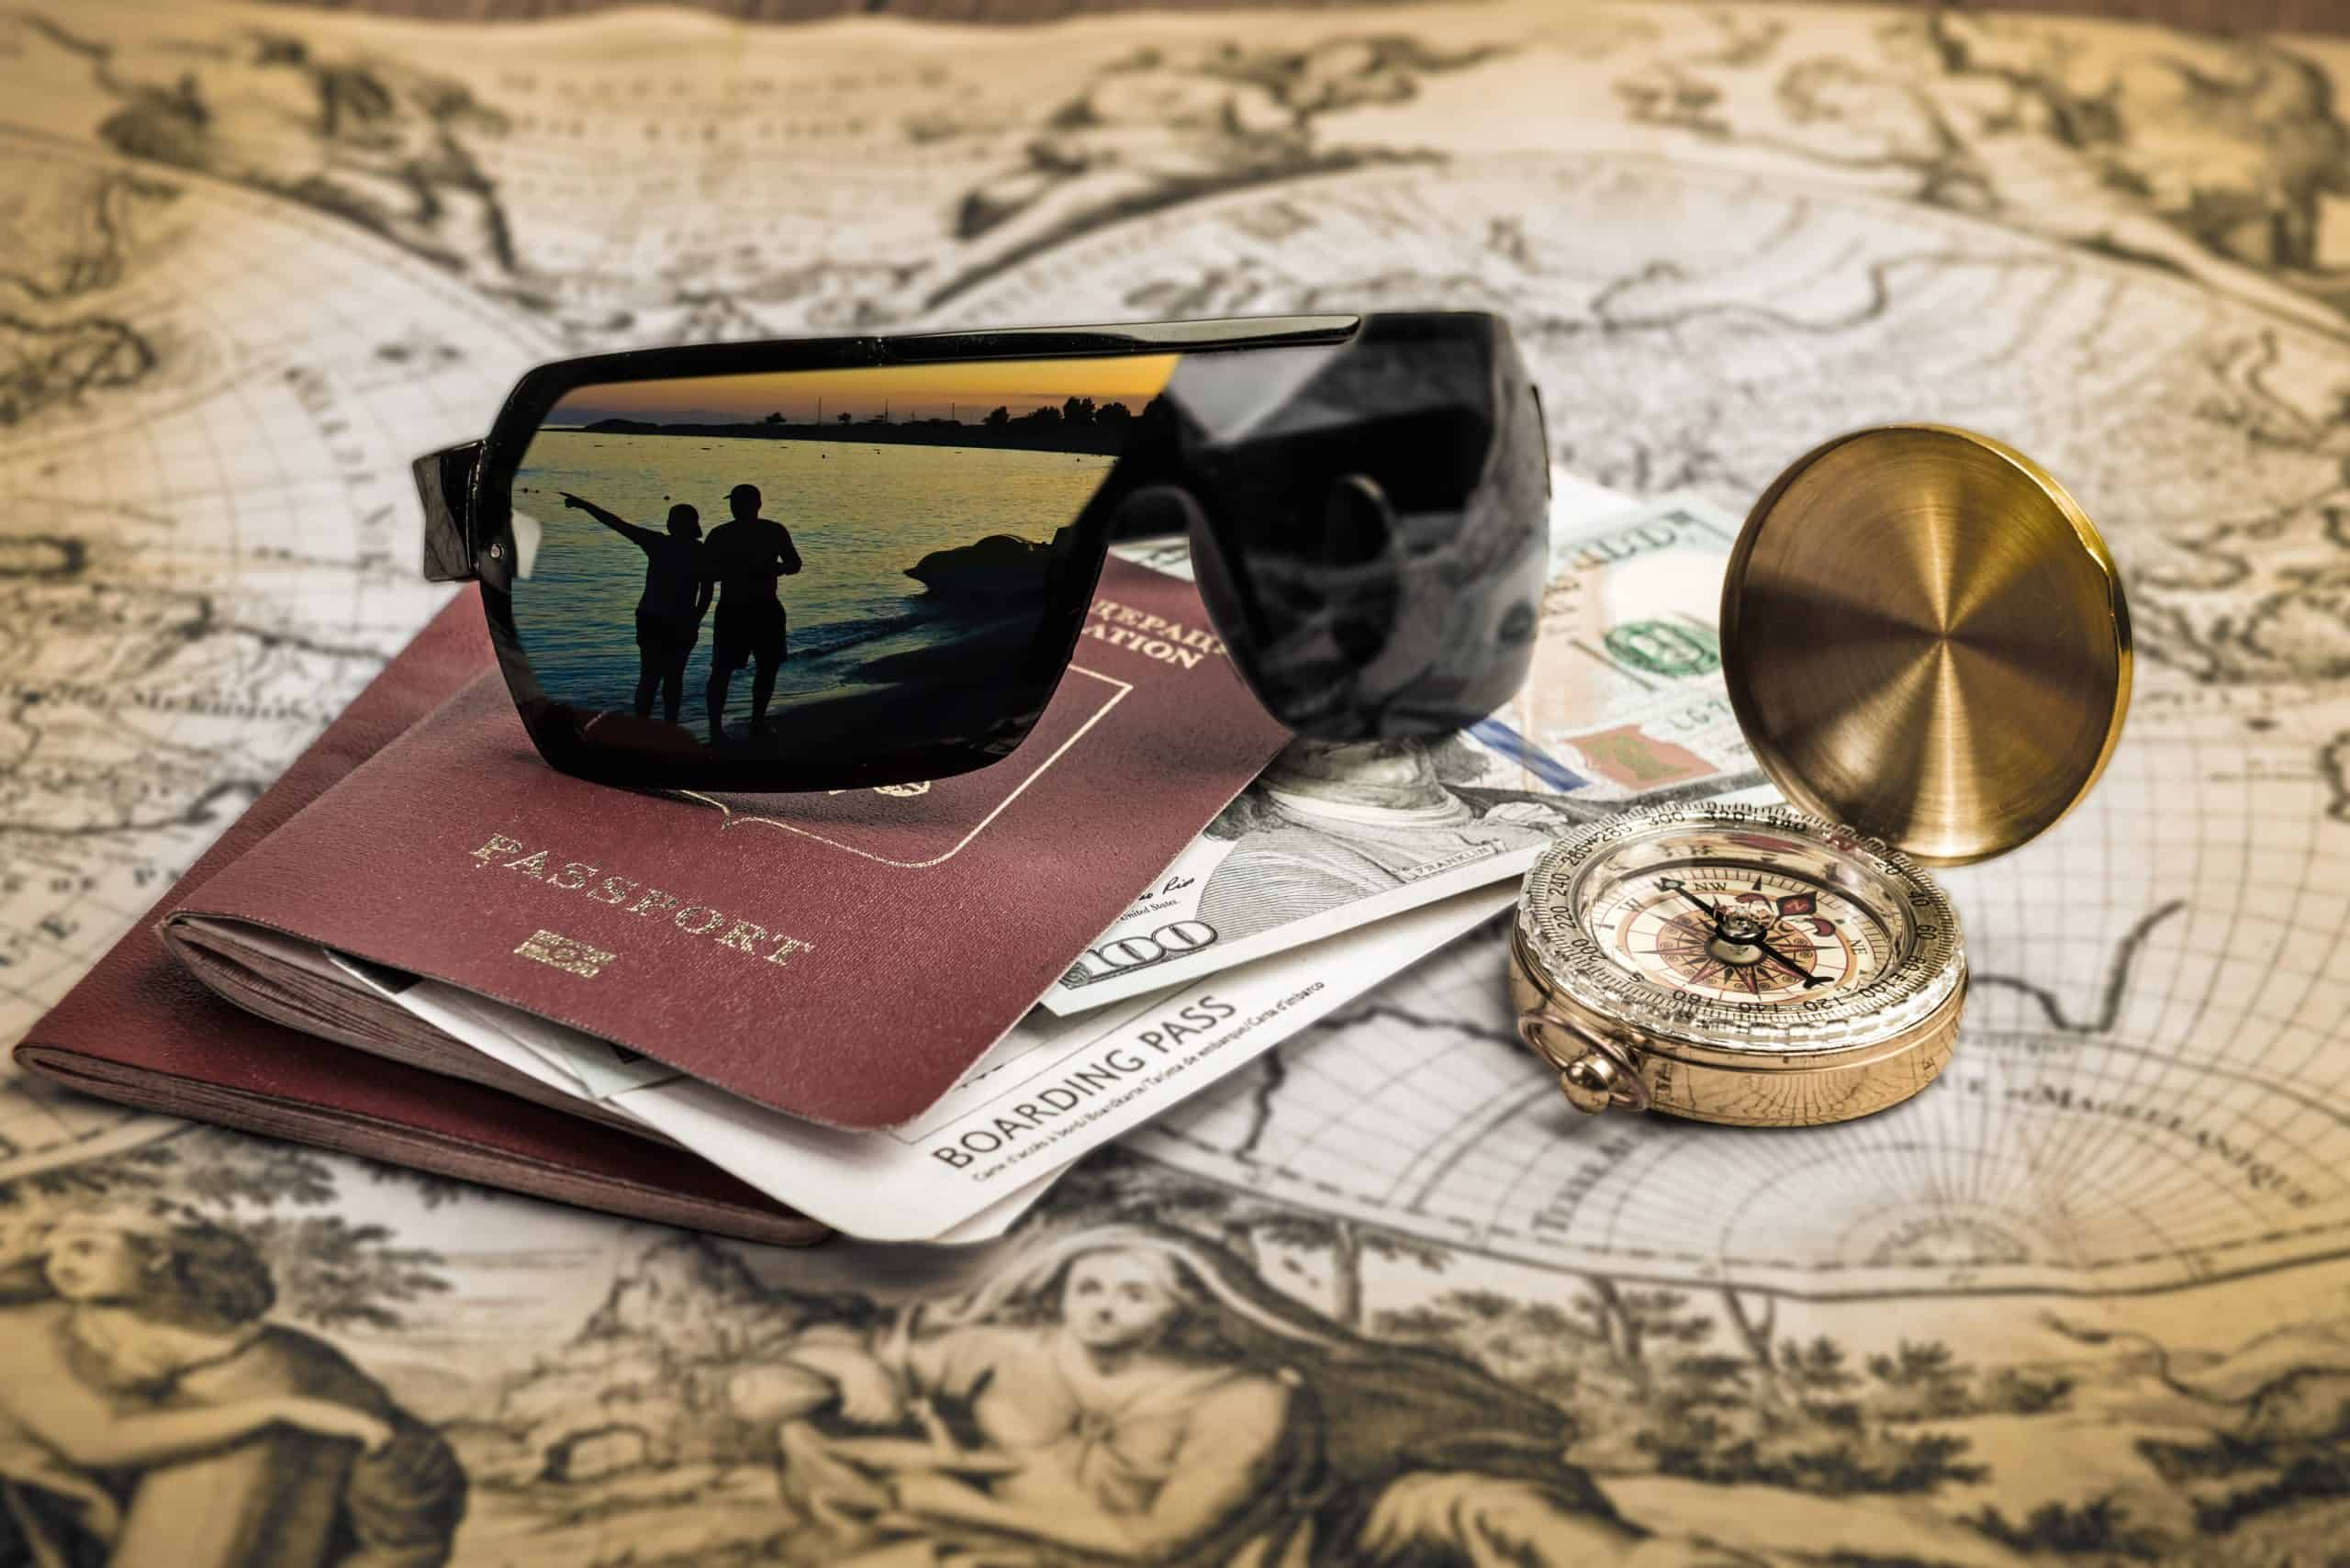 Travel hacks - Passport with sunglasses and compasses on old map